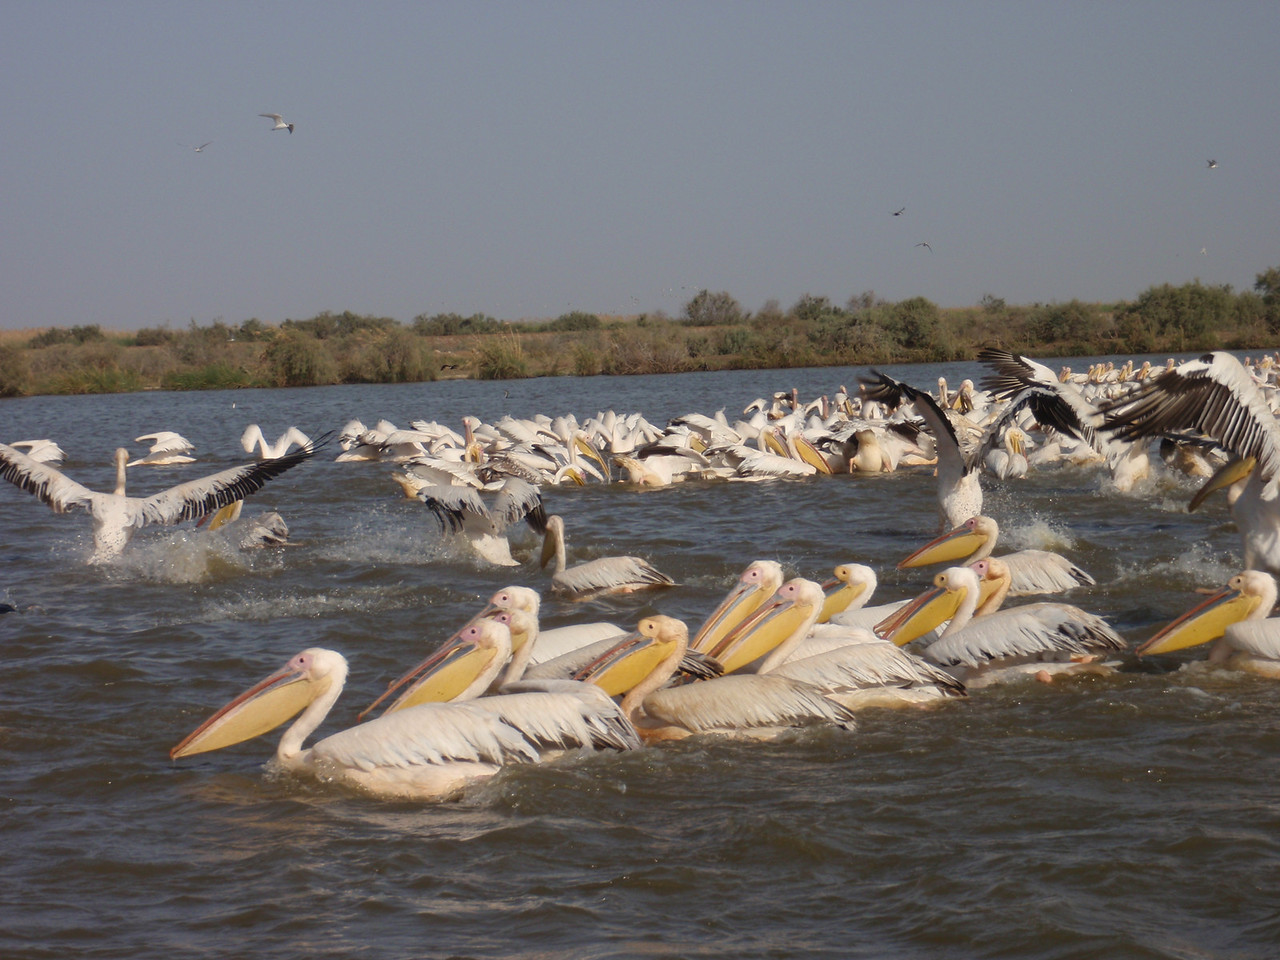 155_Djoudj National Bird Park  Pelicans Taking Flight